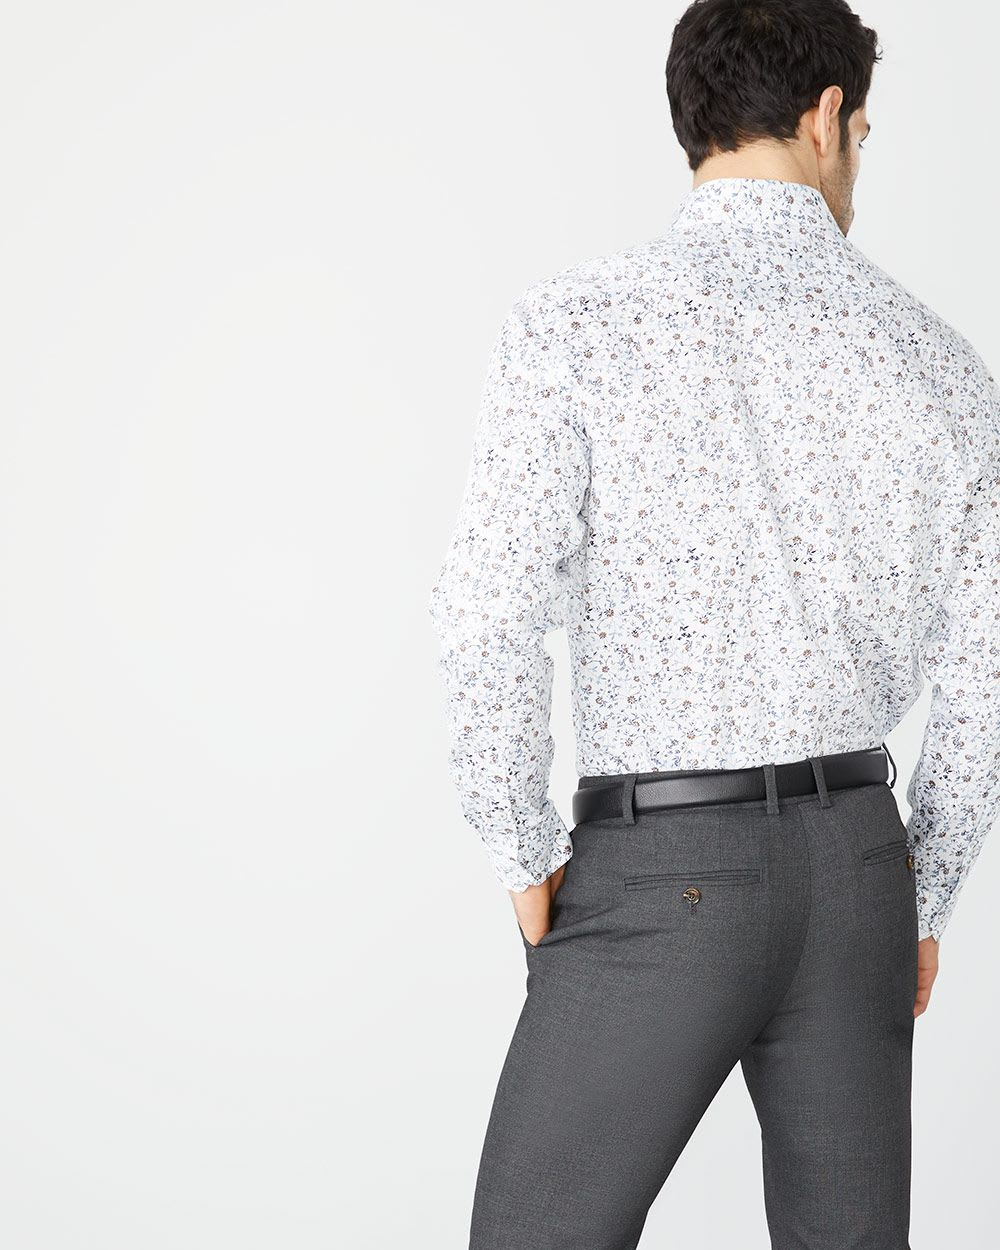 Athletic Fit faded floral dress shirt